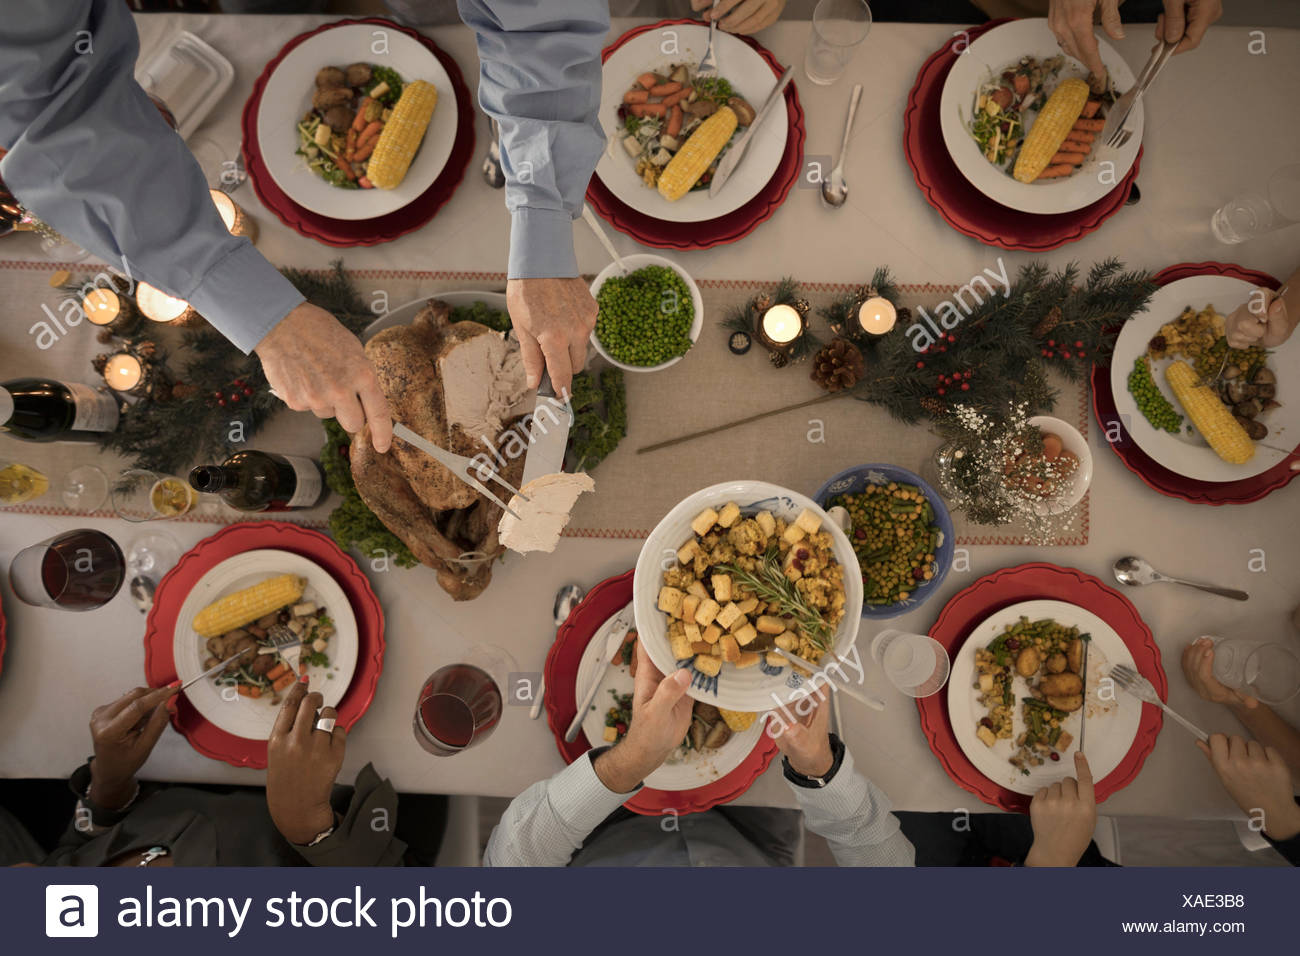 Overhead view family carving and serving turkey at Christmas dinner table - Stock Image